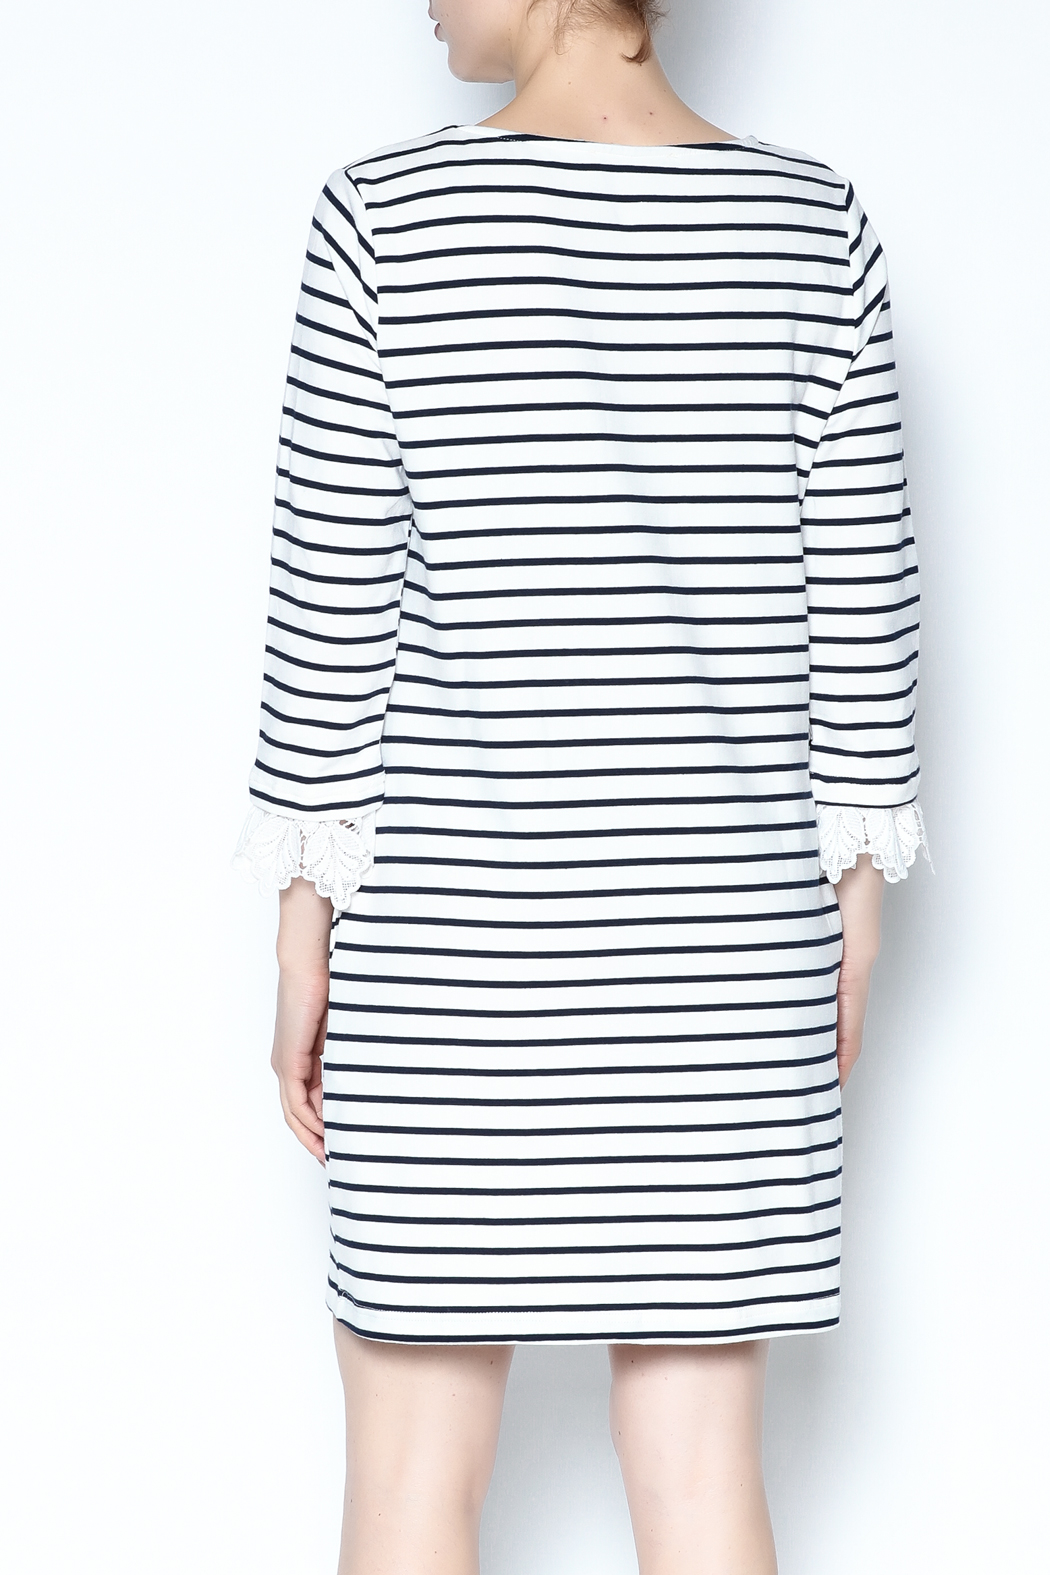 Ellison Striped Dress - Back Cropped Image